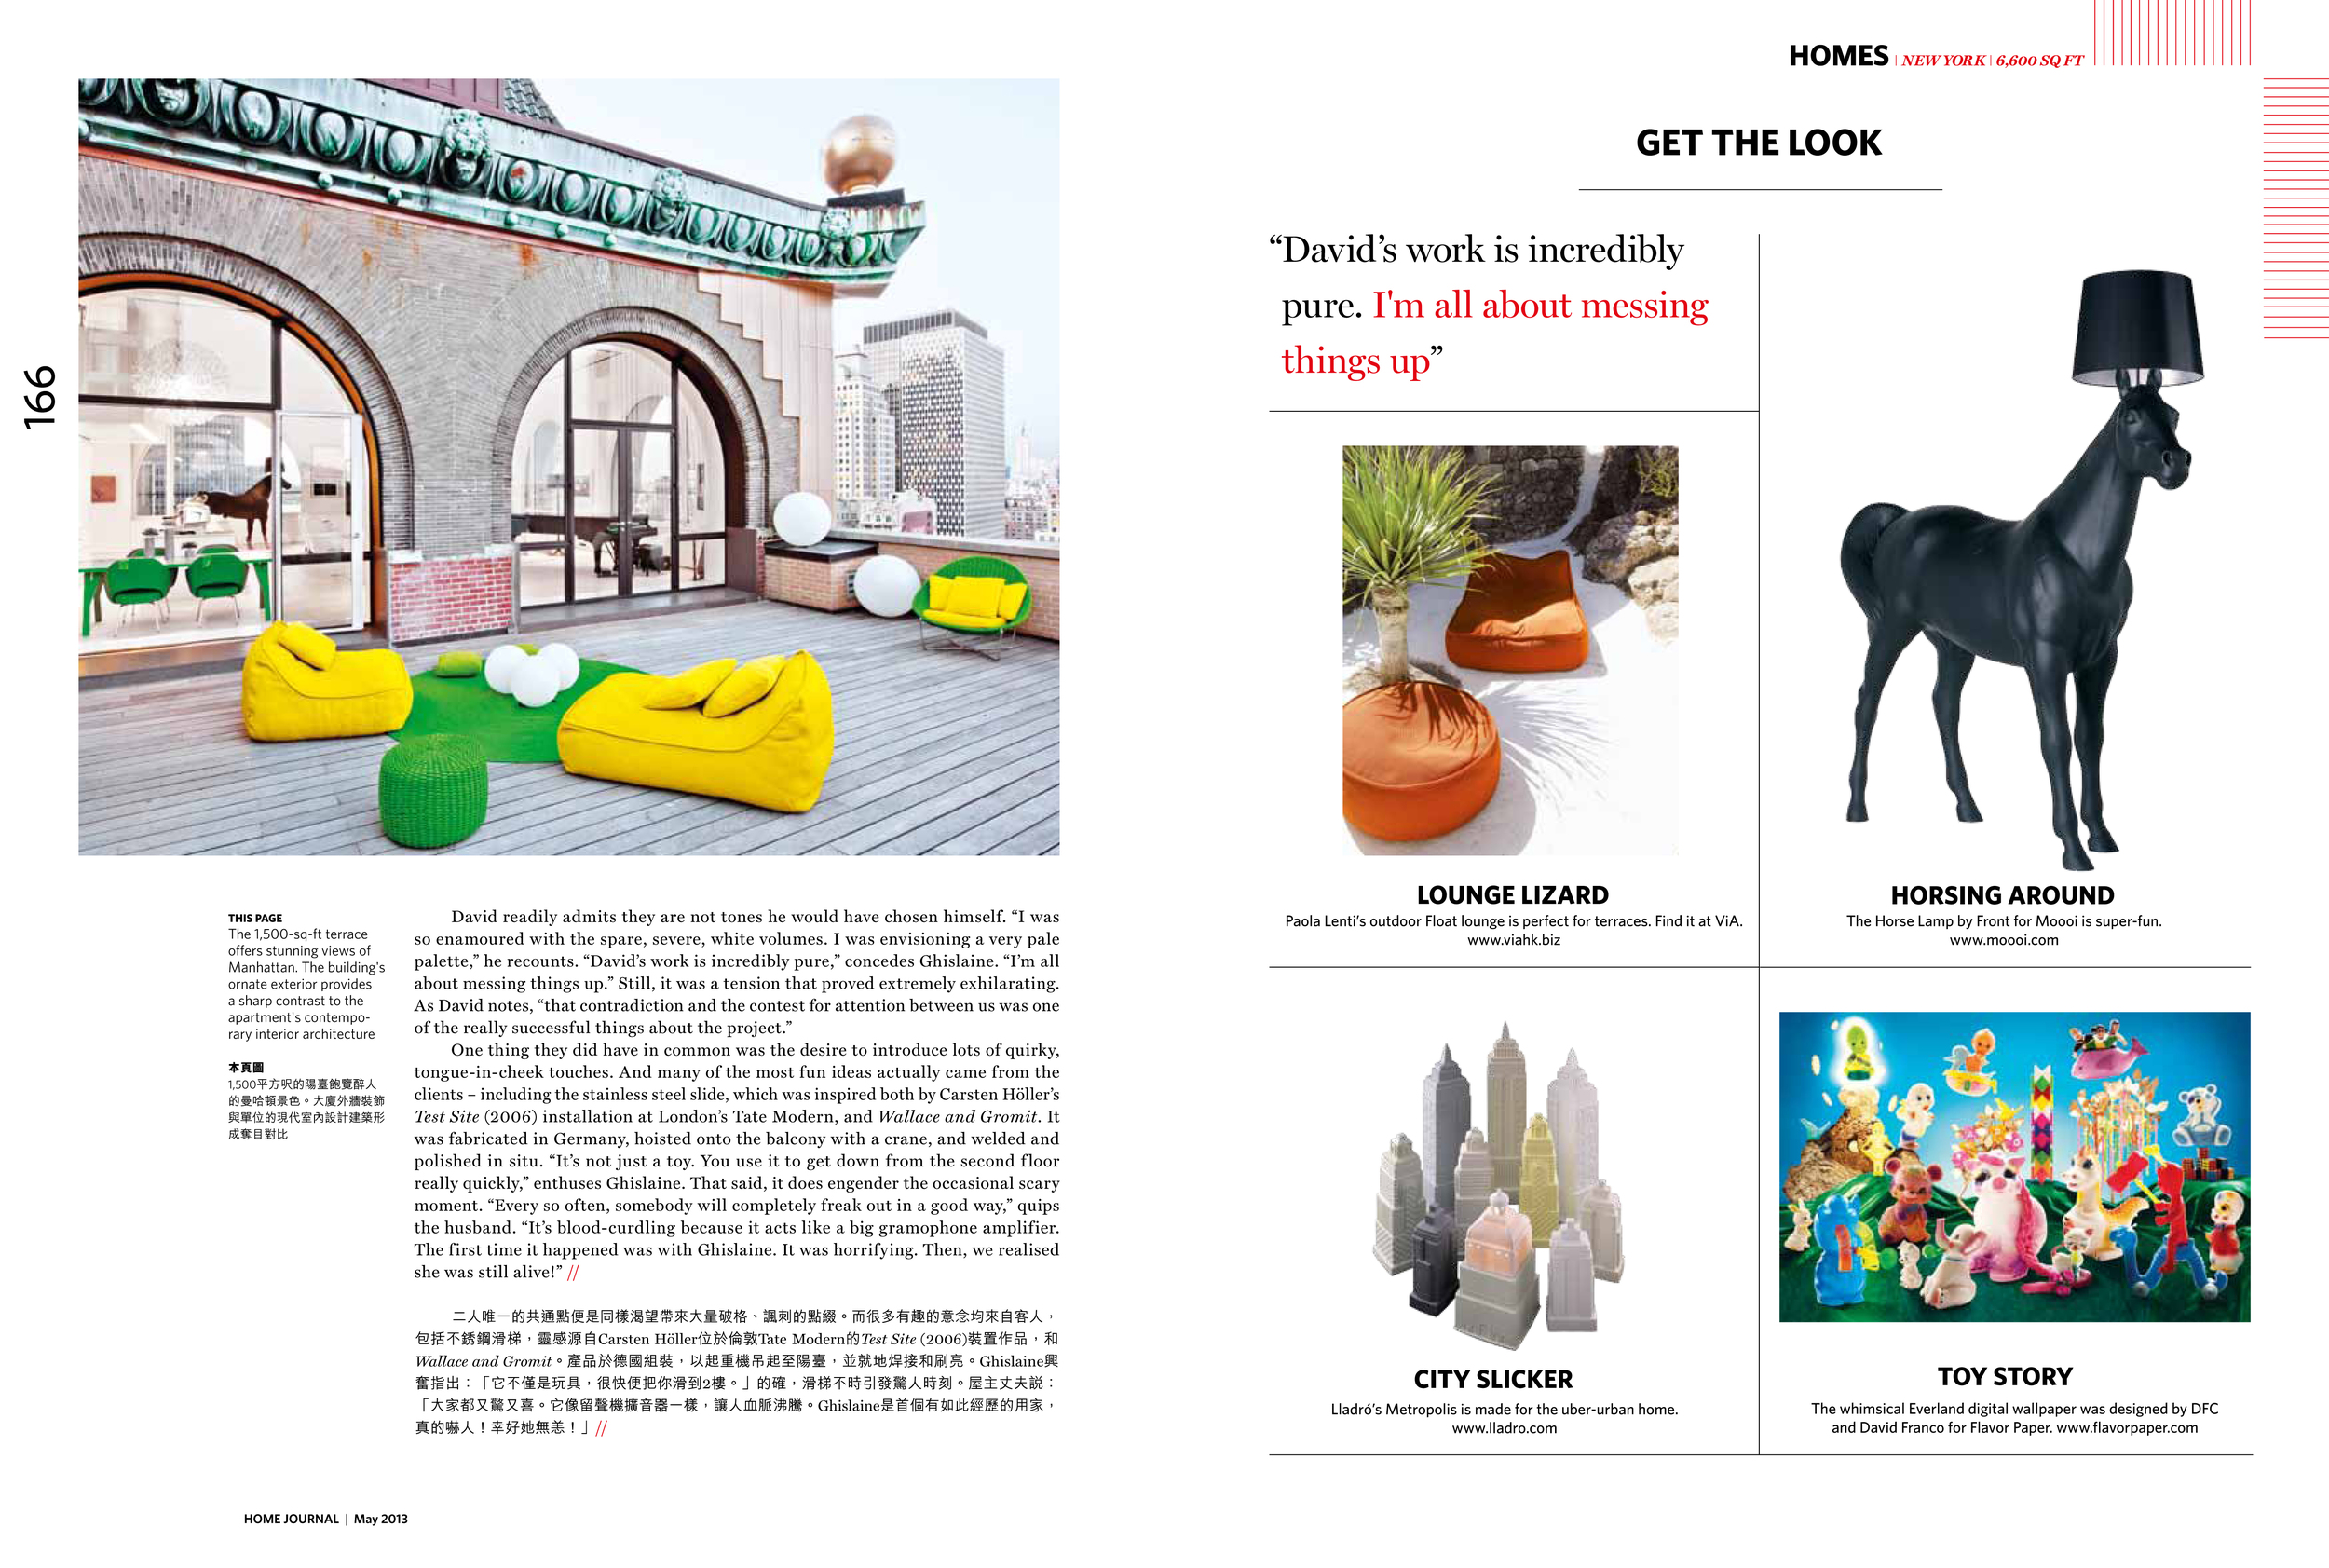 HOMES overseas2 may2013-11-12.jpg